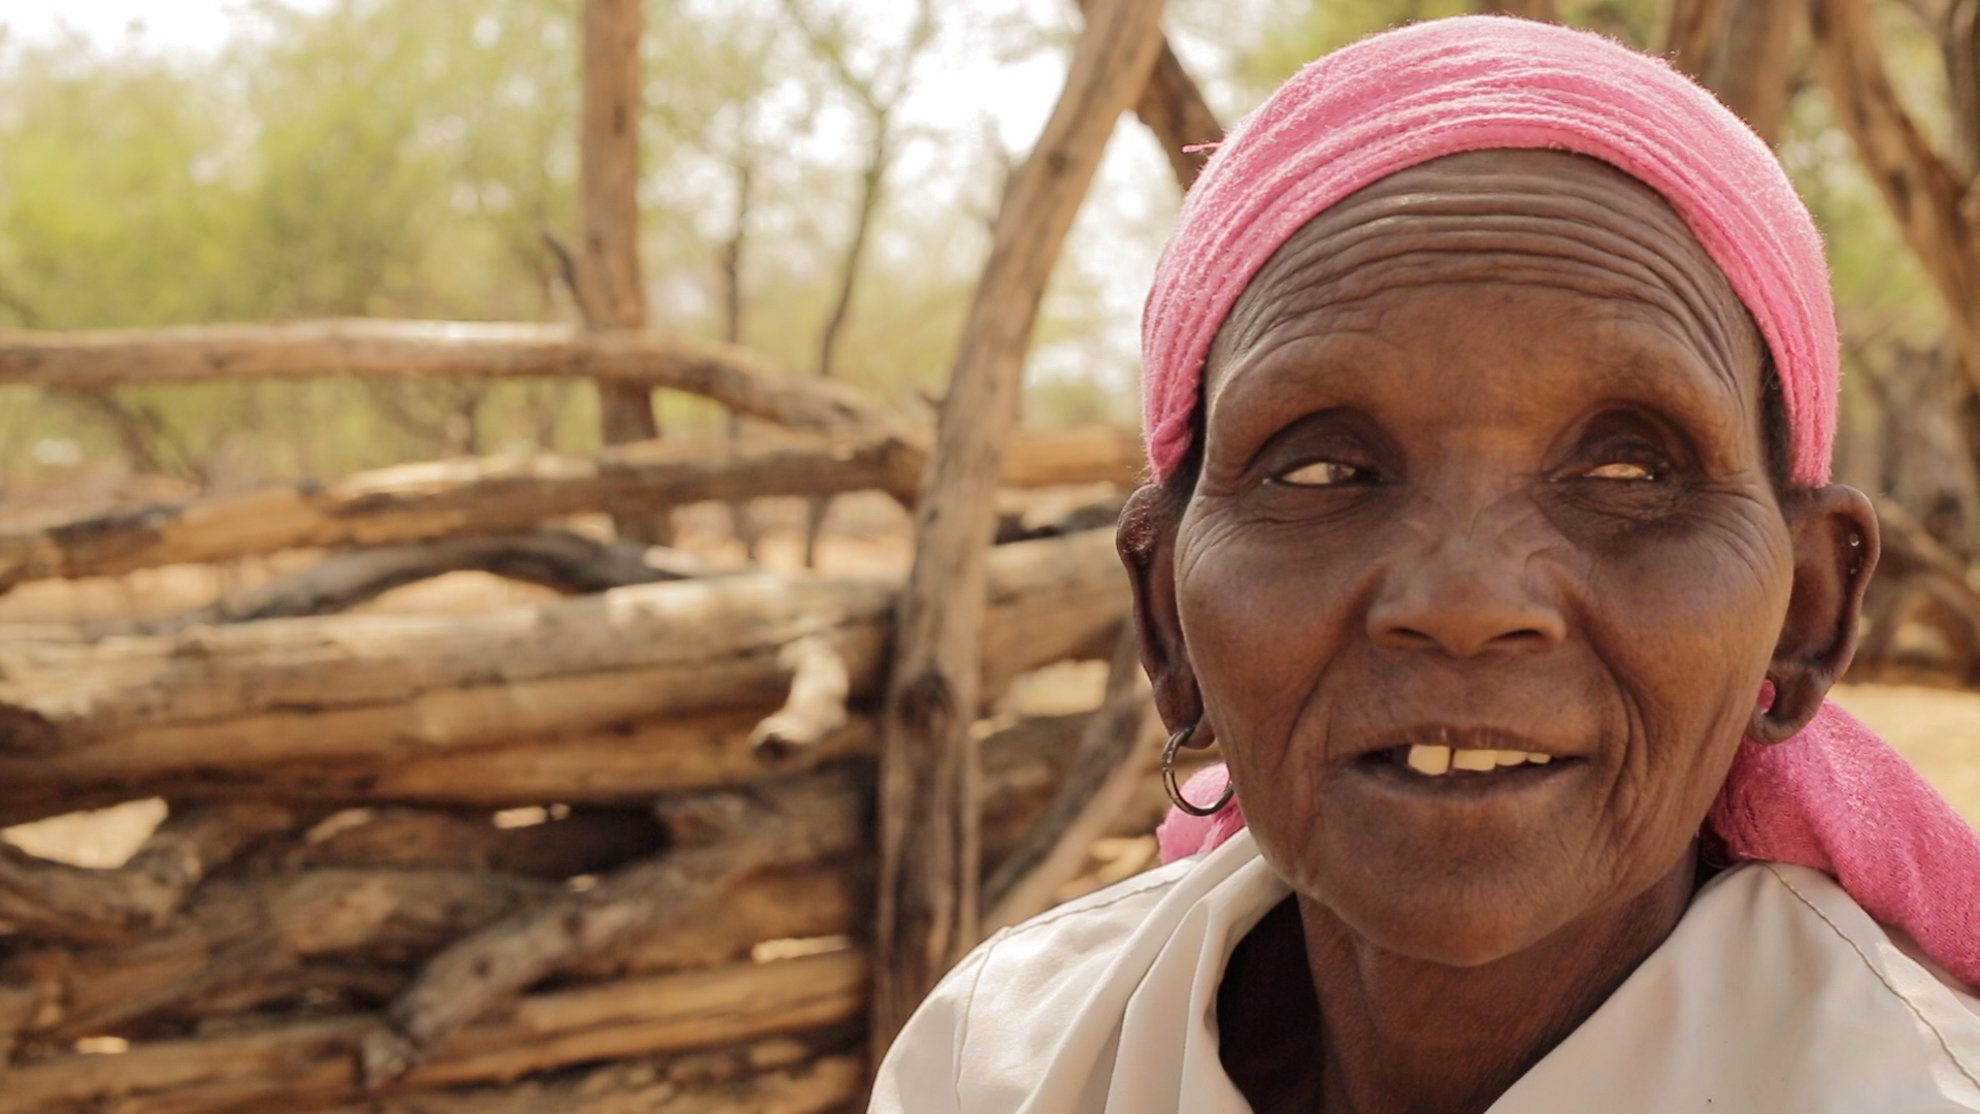 Chepserum lives in an arid part of western Kenya, where she relies on basic subsistence farming. As her eyesight began to fai